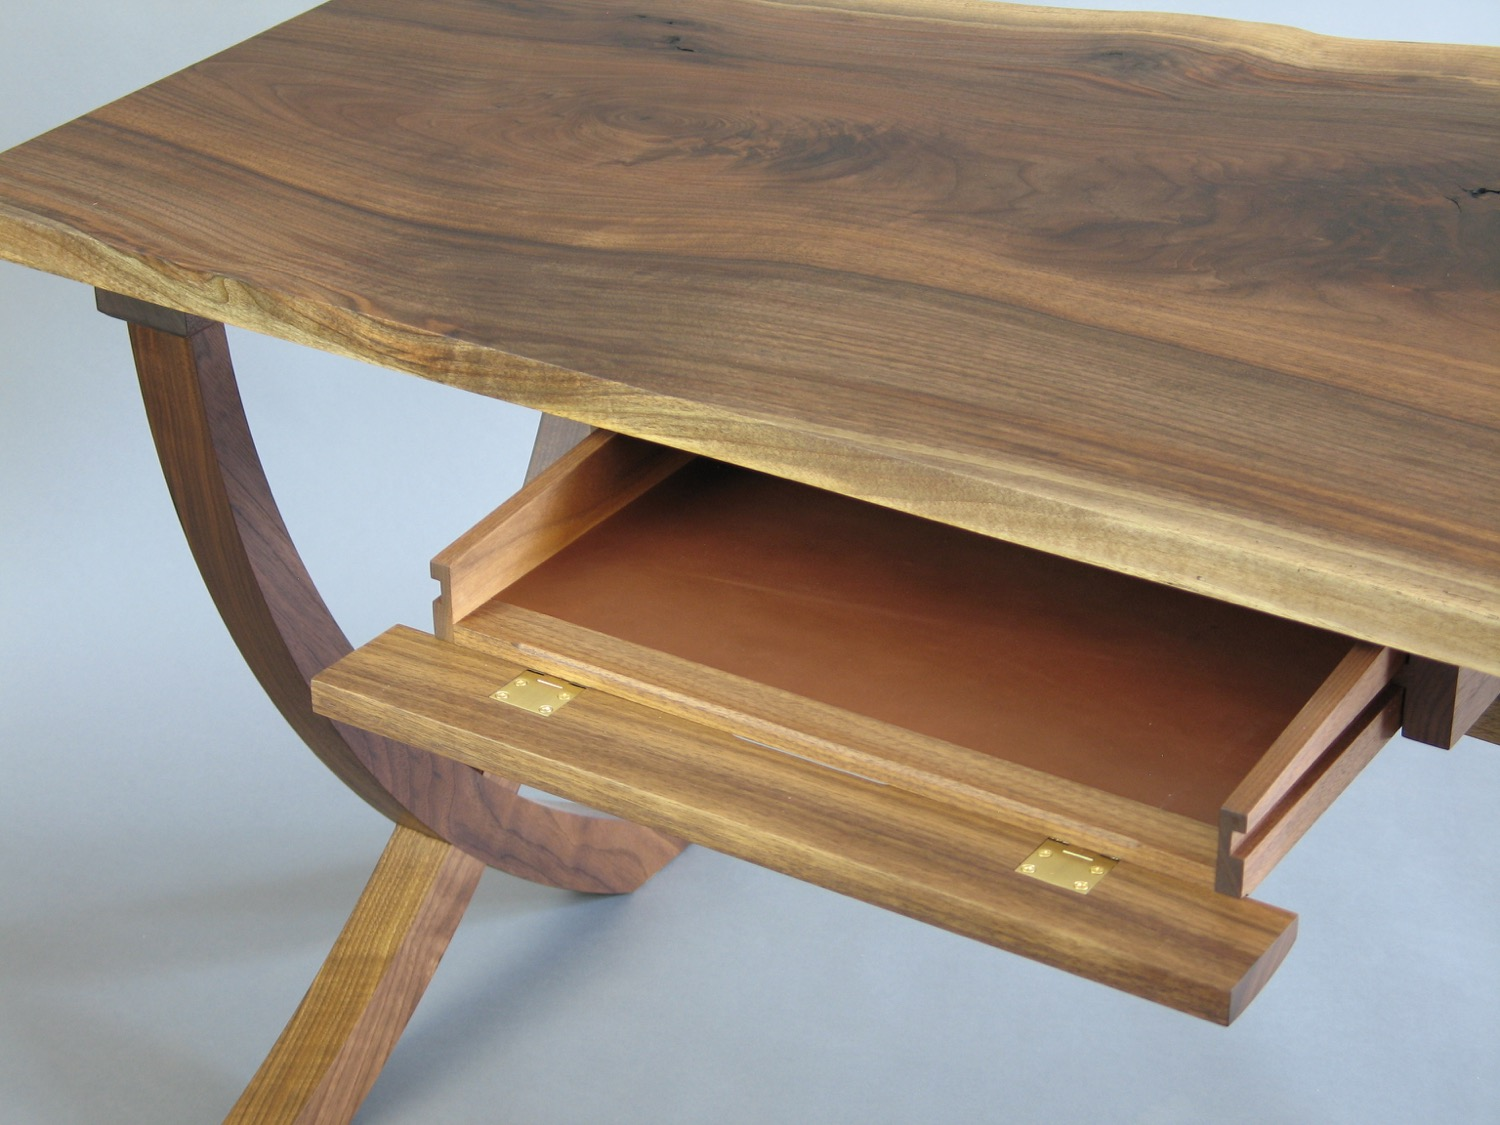 Beck desk detail - walnut with leather-lined keyboard pull out